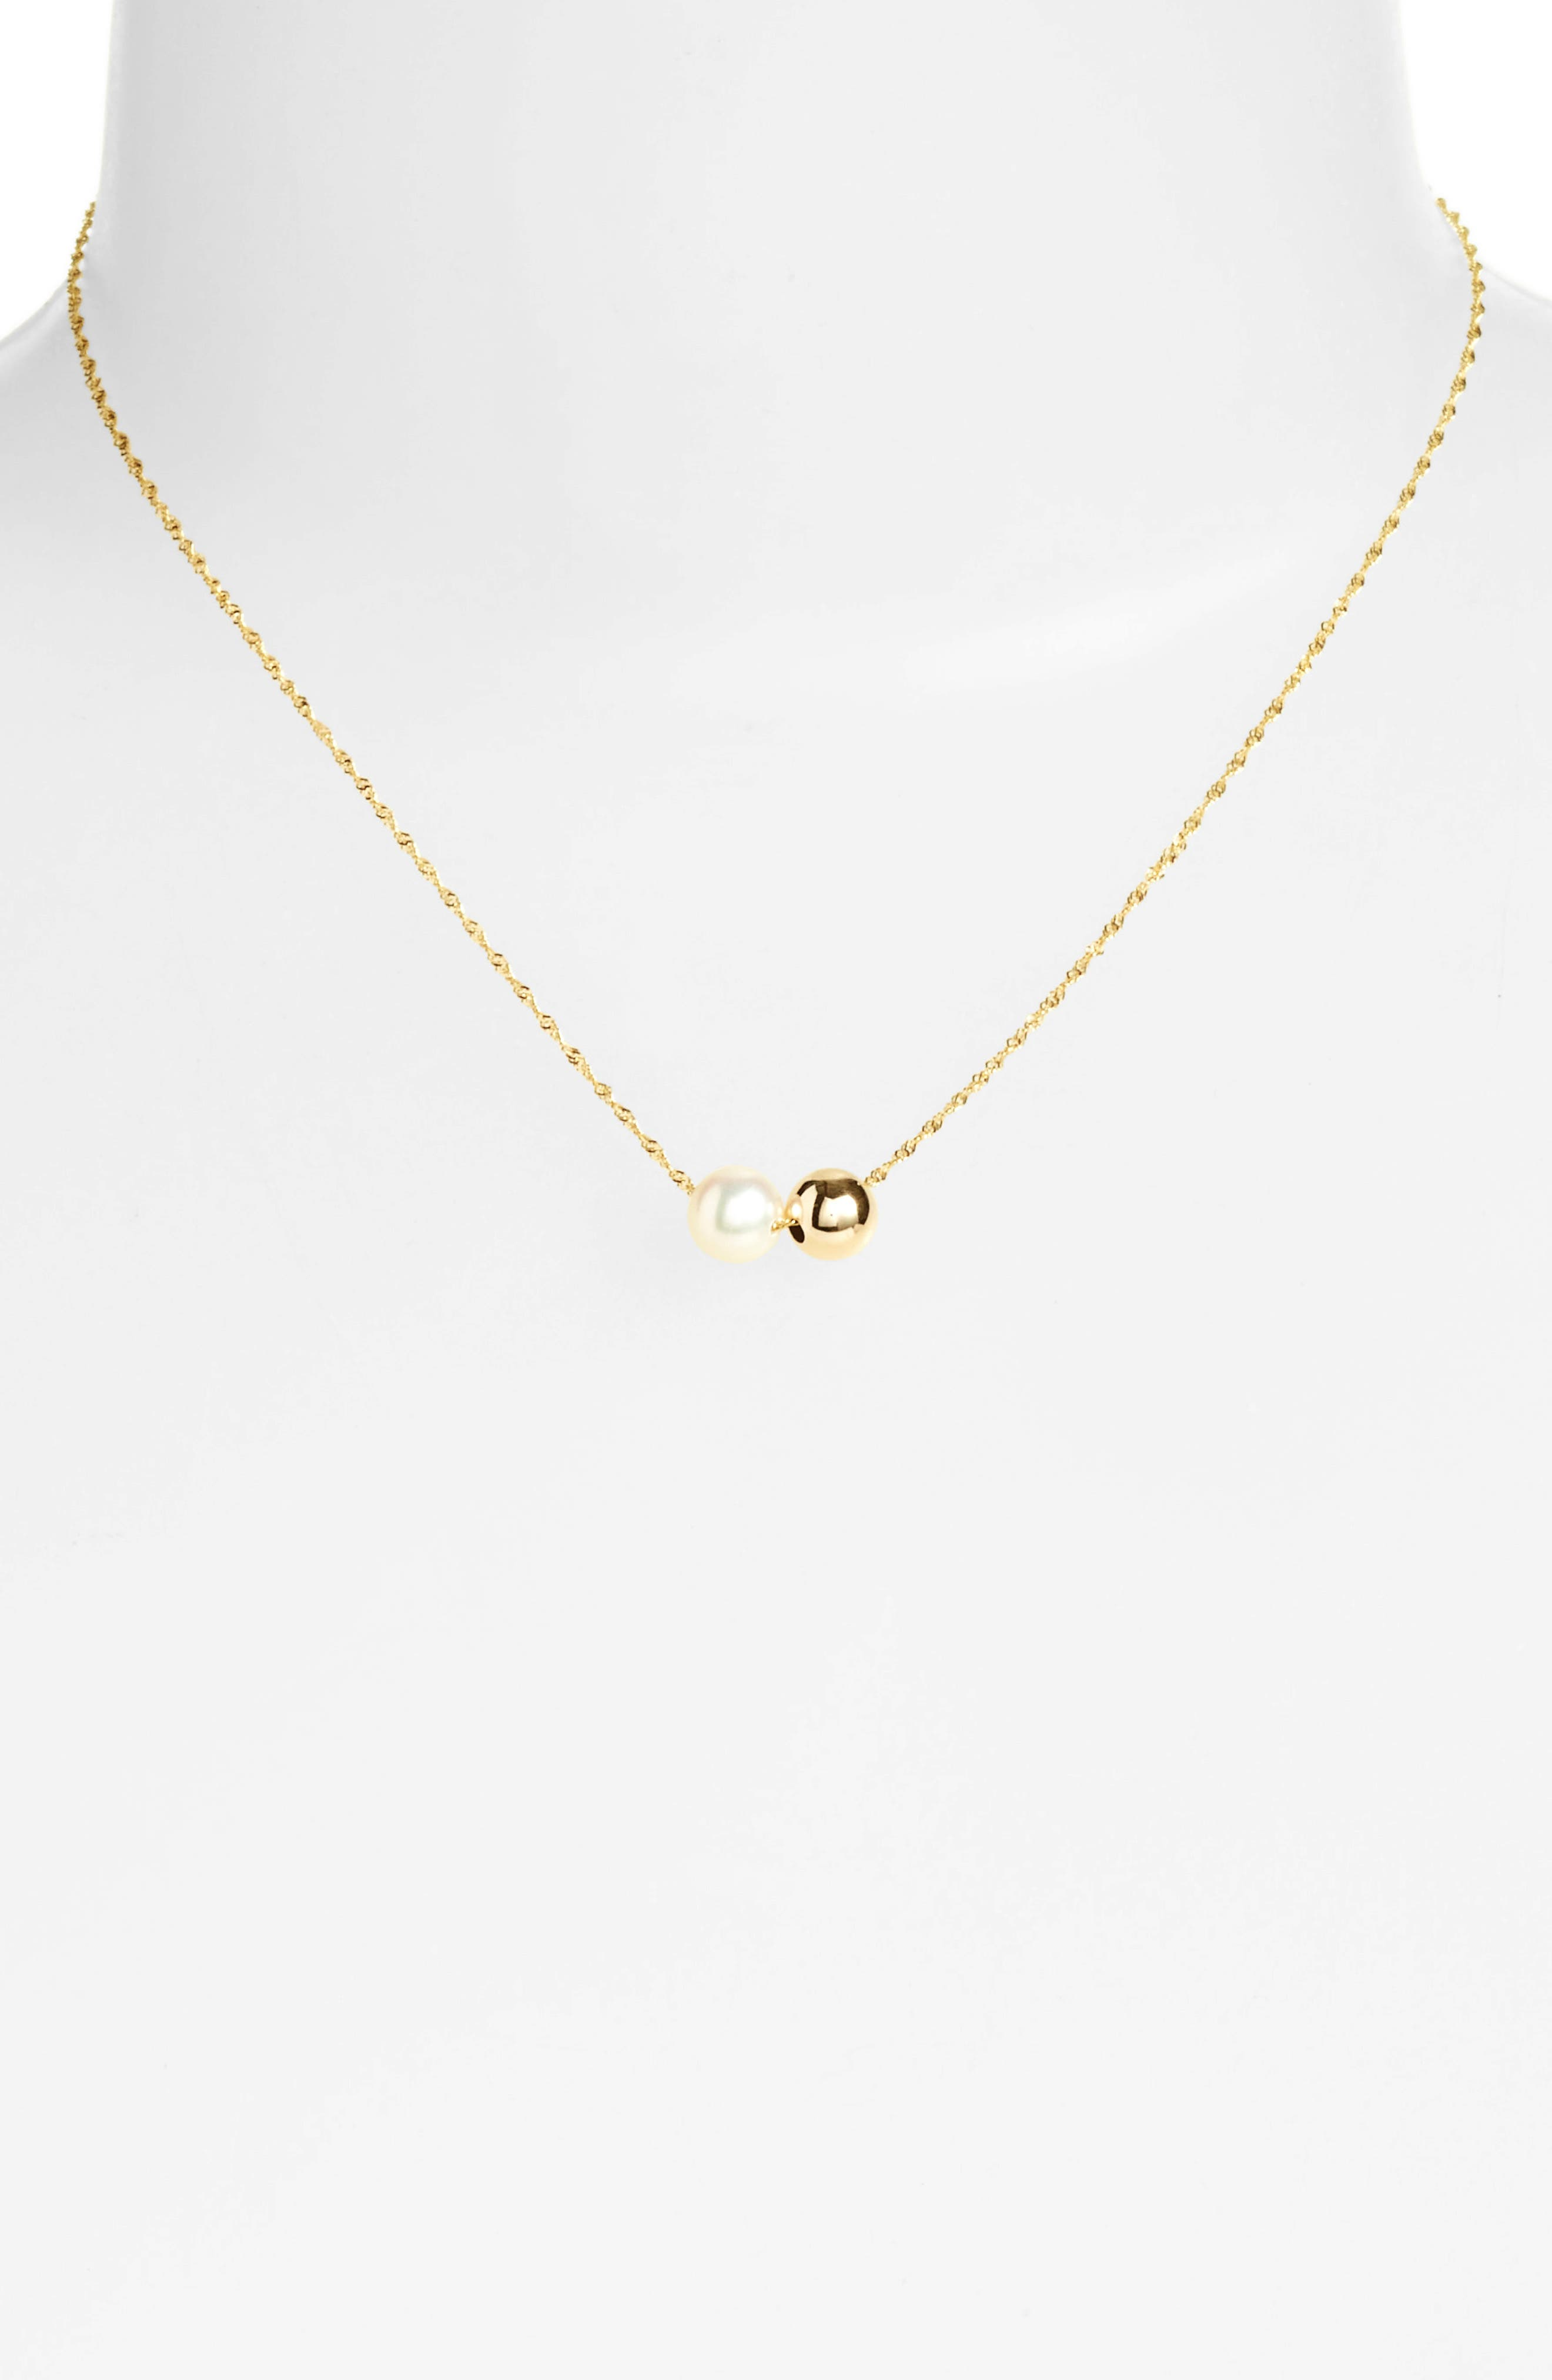 Duo Pearl Pendant Necklace,                             Alternate thumbnail 2, color,                             Yellow Gold